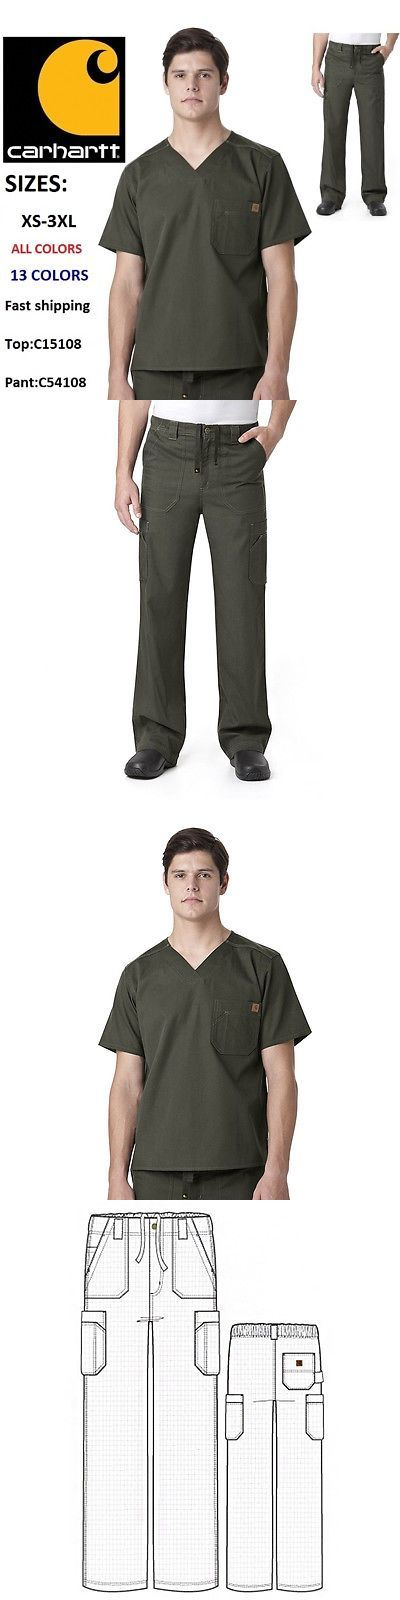 Sets 105432: Carhartt Men S Scrubs Set (C54108a Ripstop Multi-Cargo Pant C15108a V-Neck Top) -> BUY IT NOW ONLY: $49.96 on eBay!